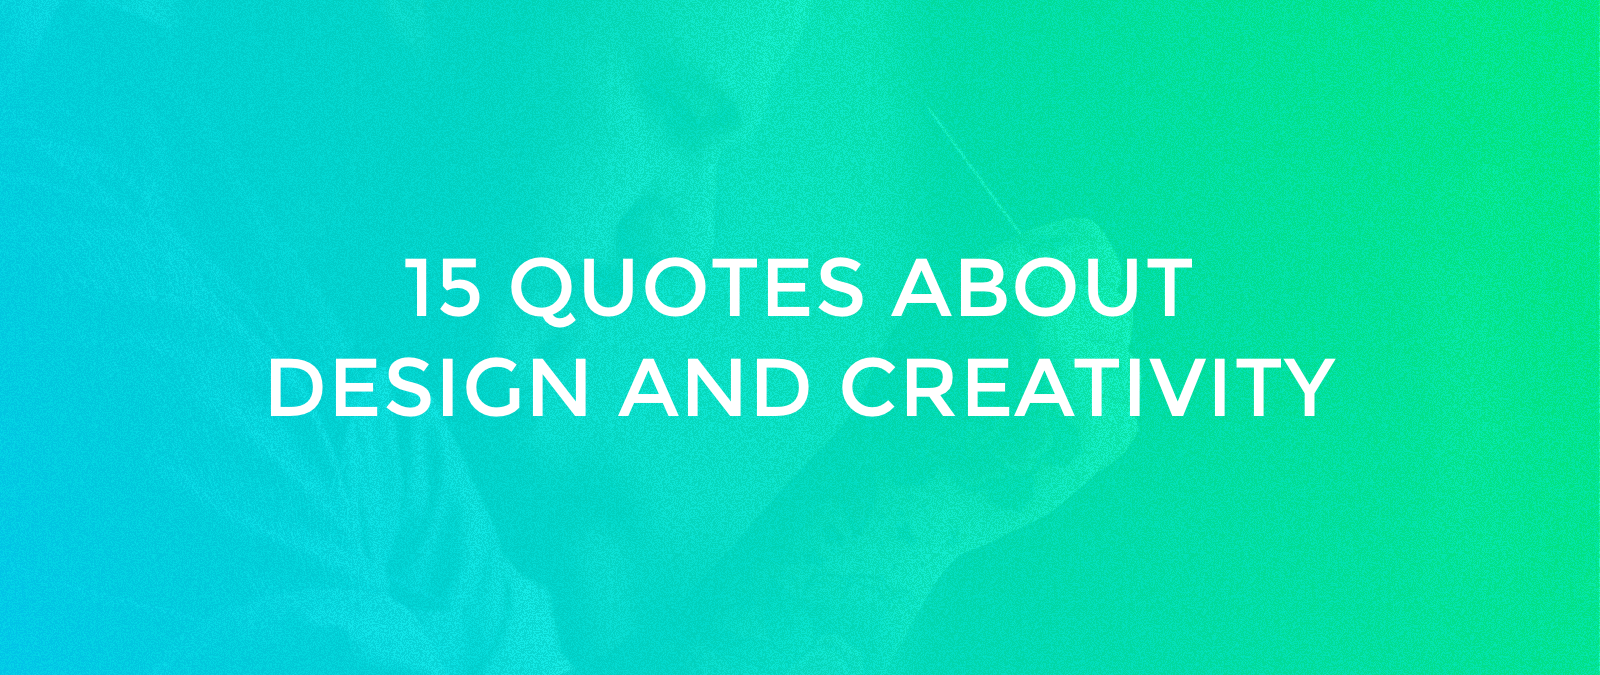 Quotes Design Cool 15 Quotes About Design And Creativity  Muzli Design Inspiration